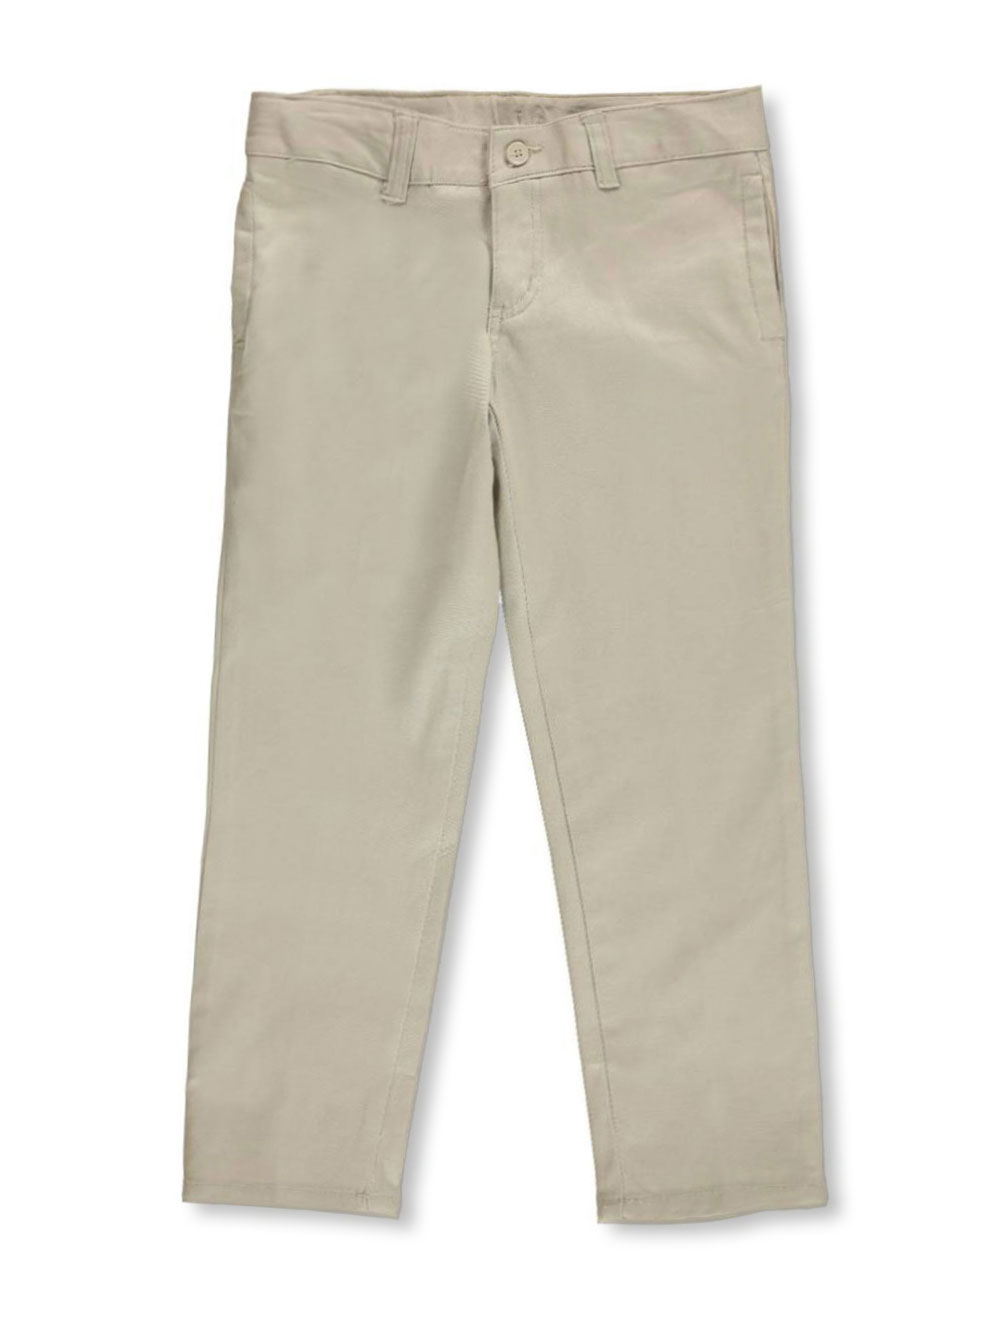 Wrinkle No More Relaxed Fit Pants